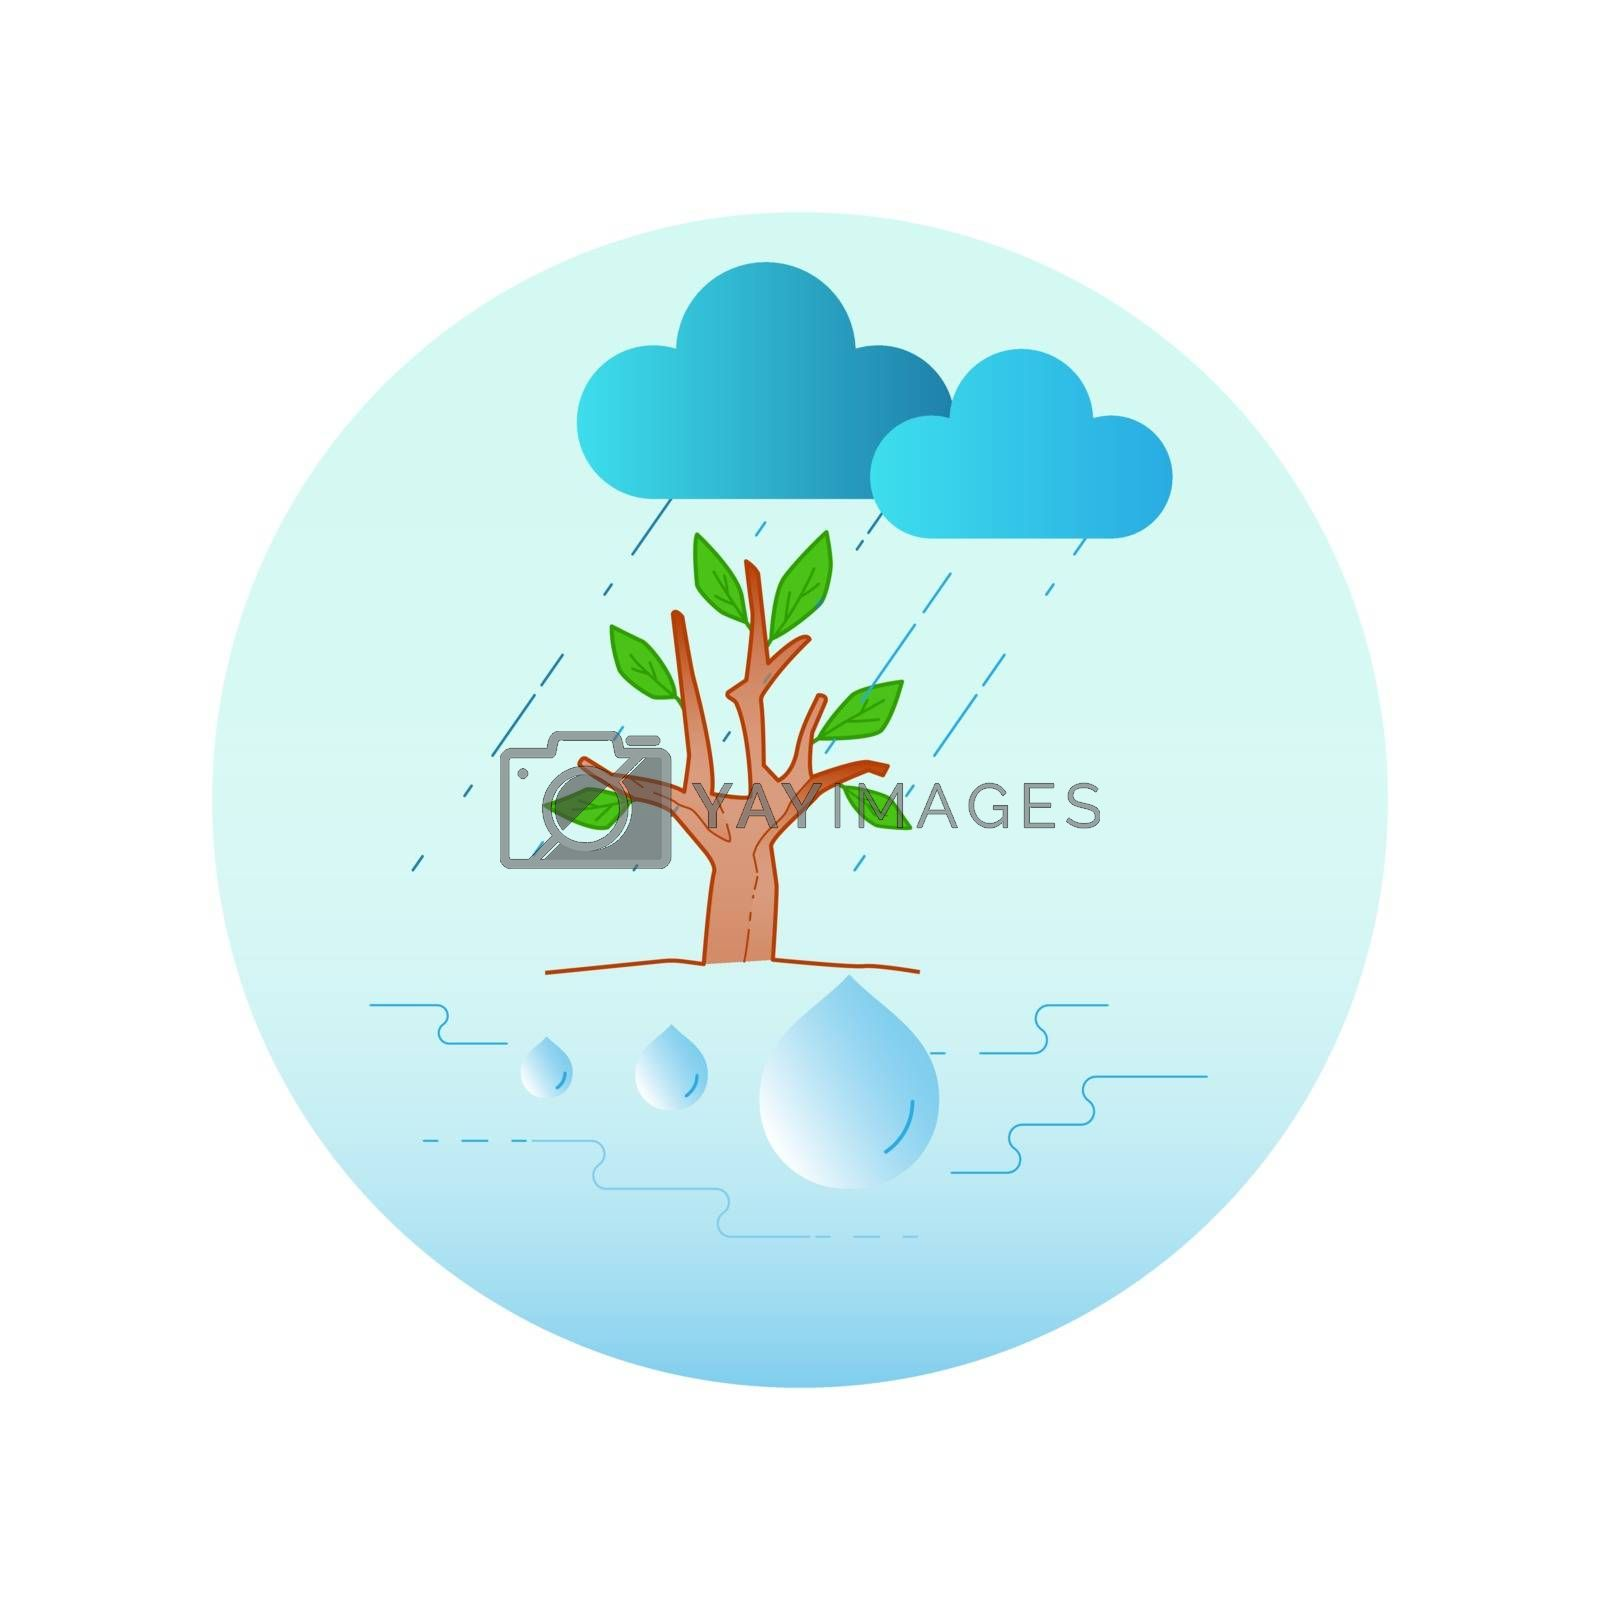 Forest regulate water cycle. The importance of relationship between forest and water. Vector illustration outline flat design style.